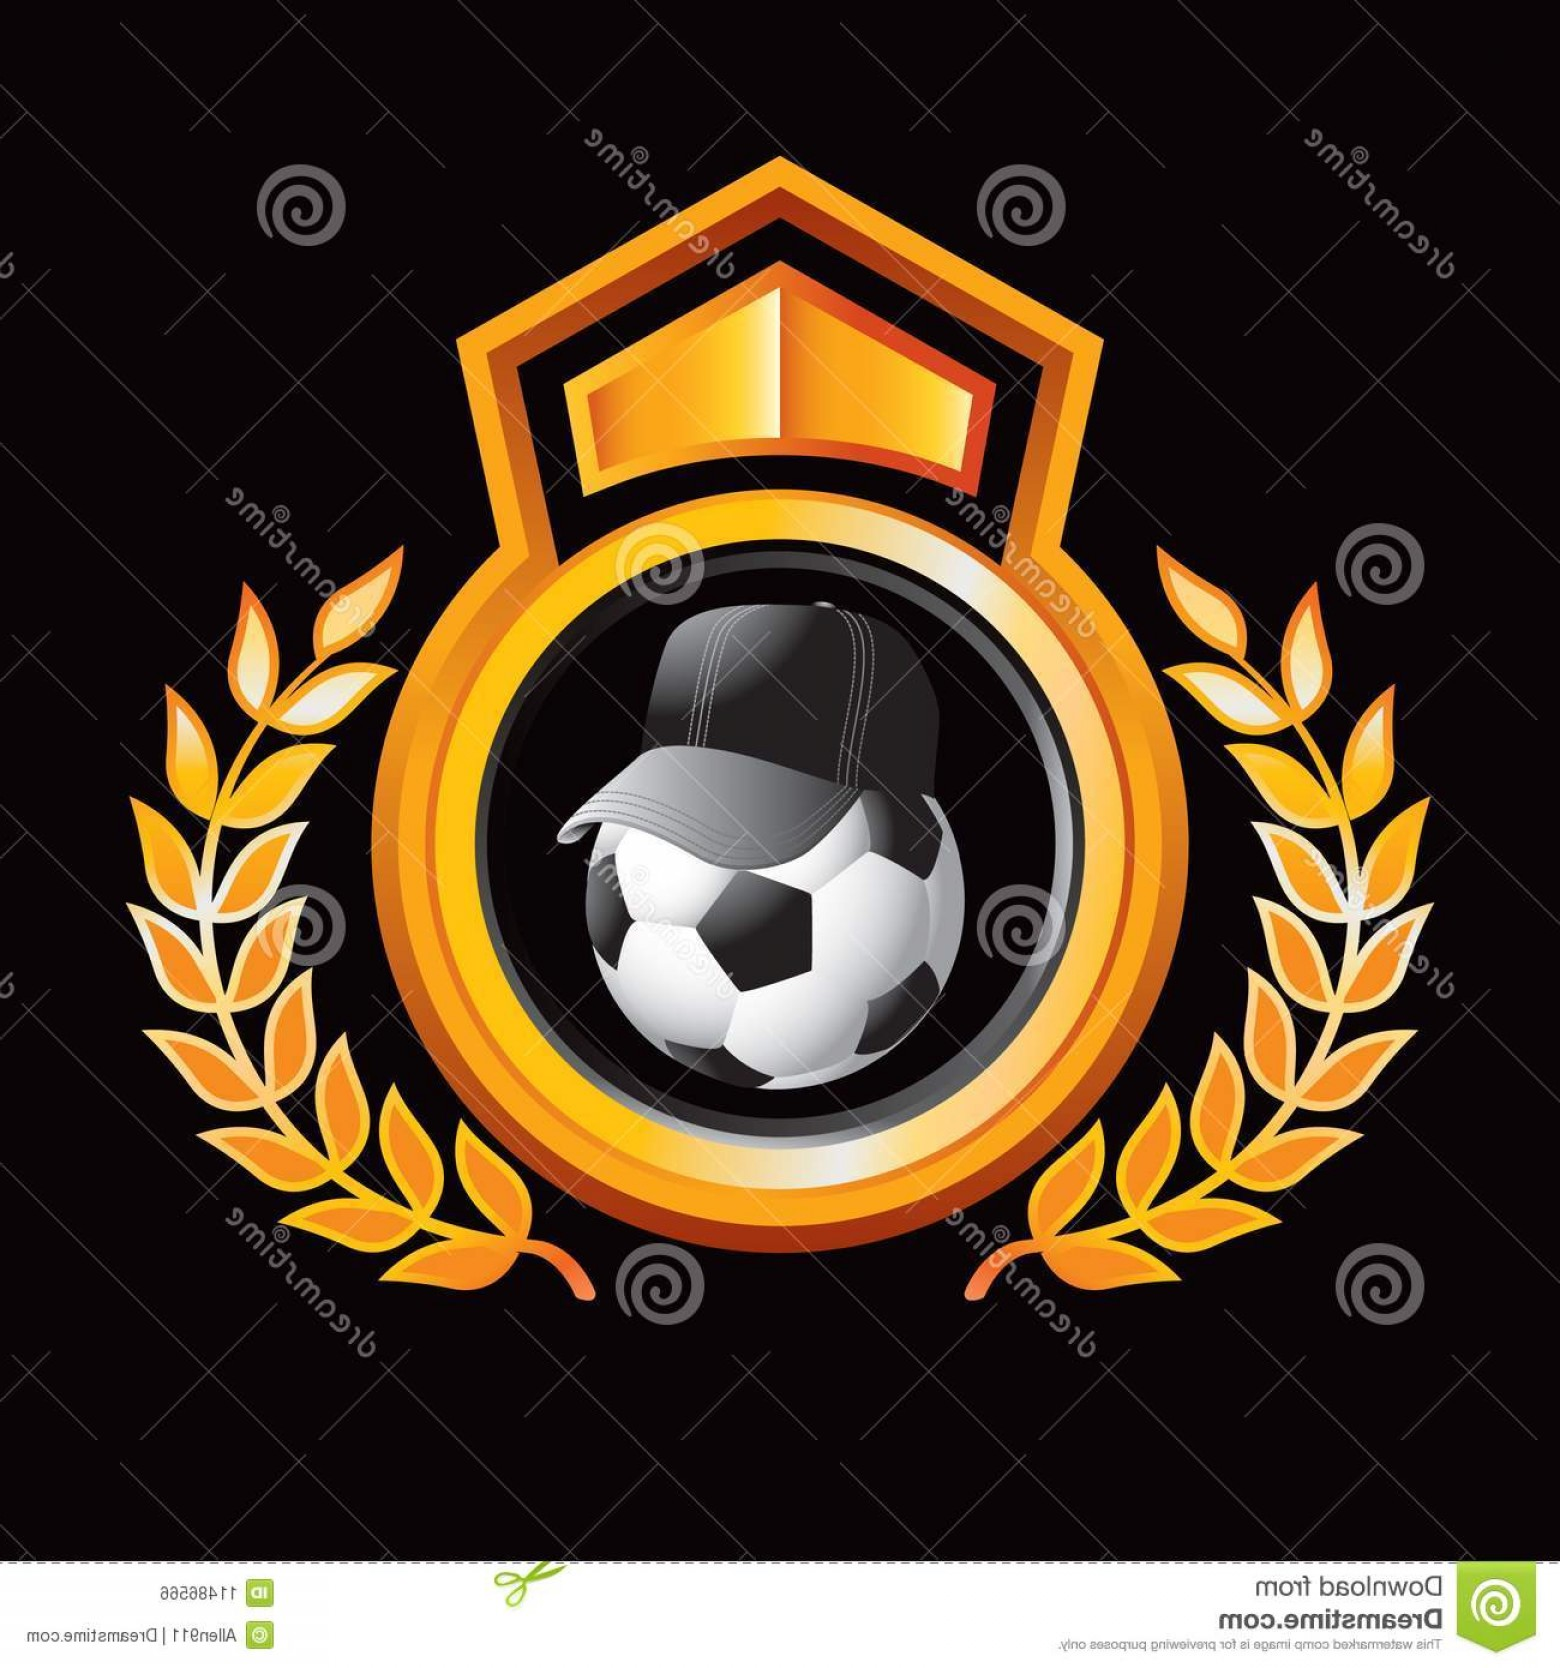 Coach Gold Logo Vector: Royalty Free Stock Image Soccer Coach Gold Royal Display Image